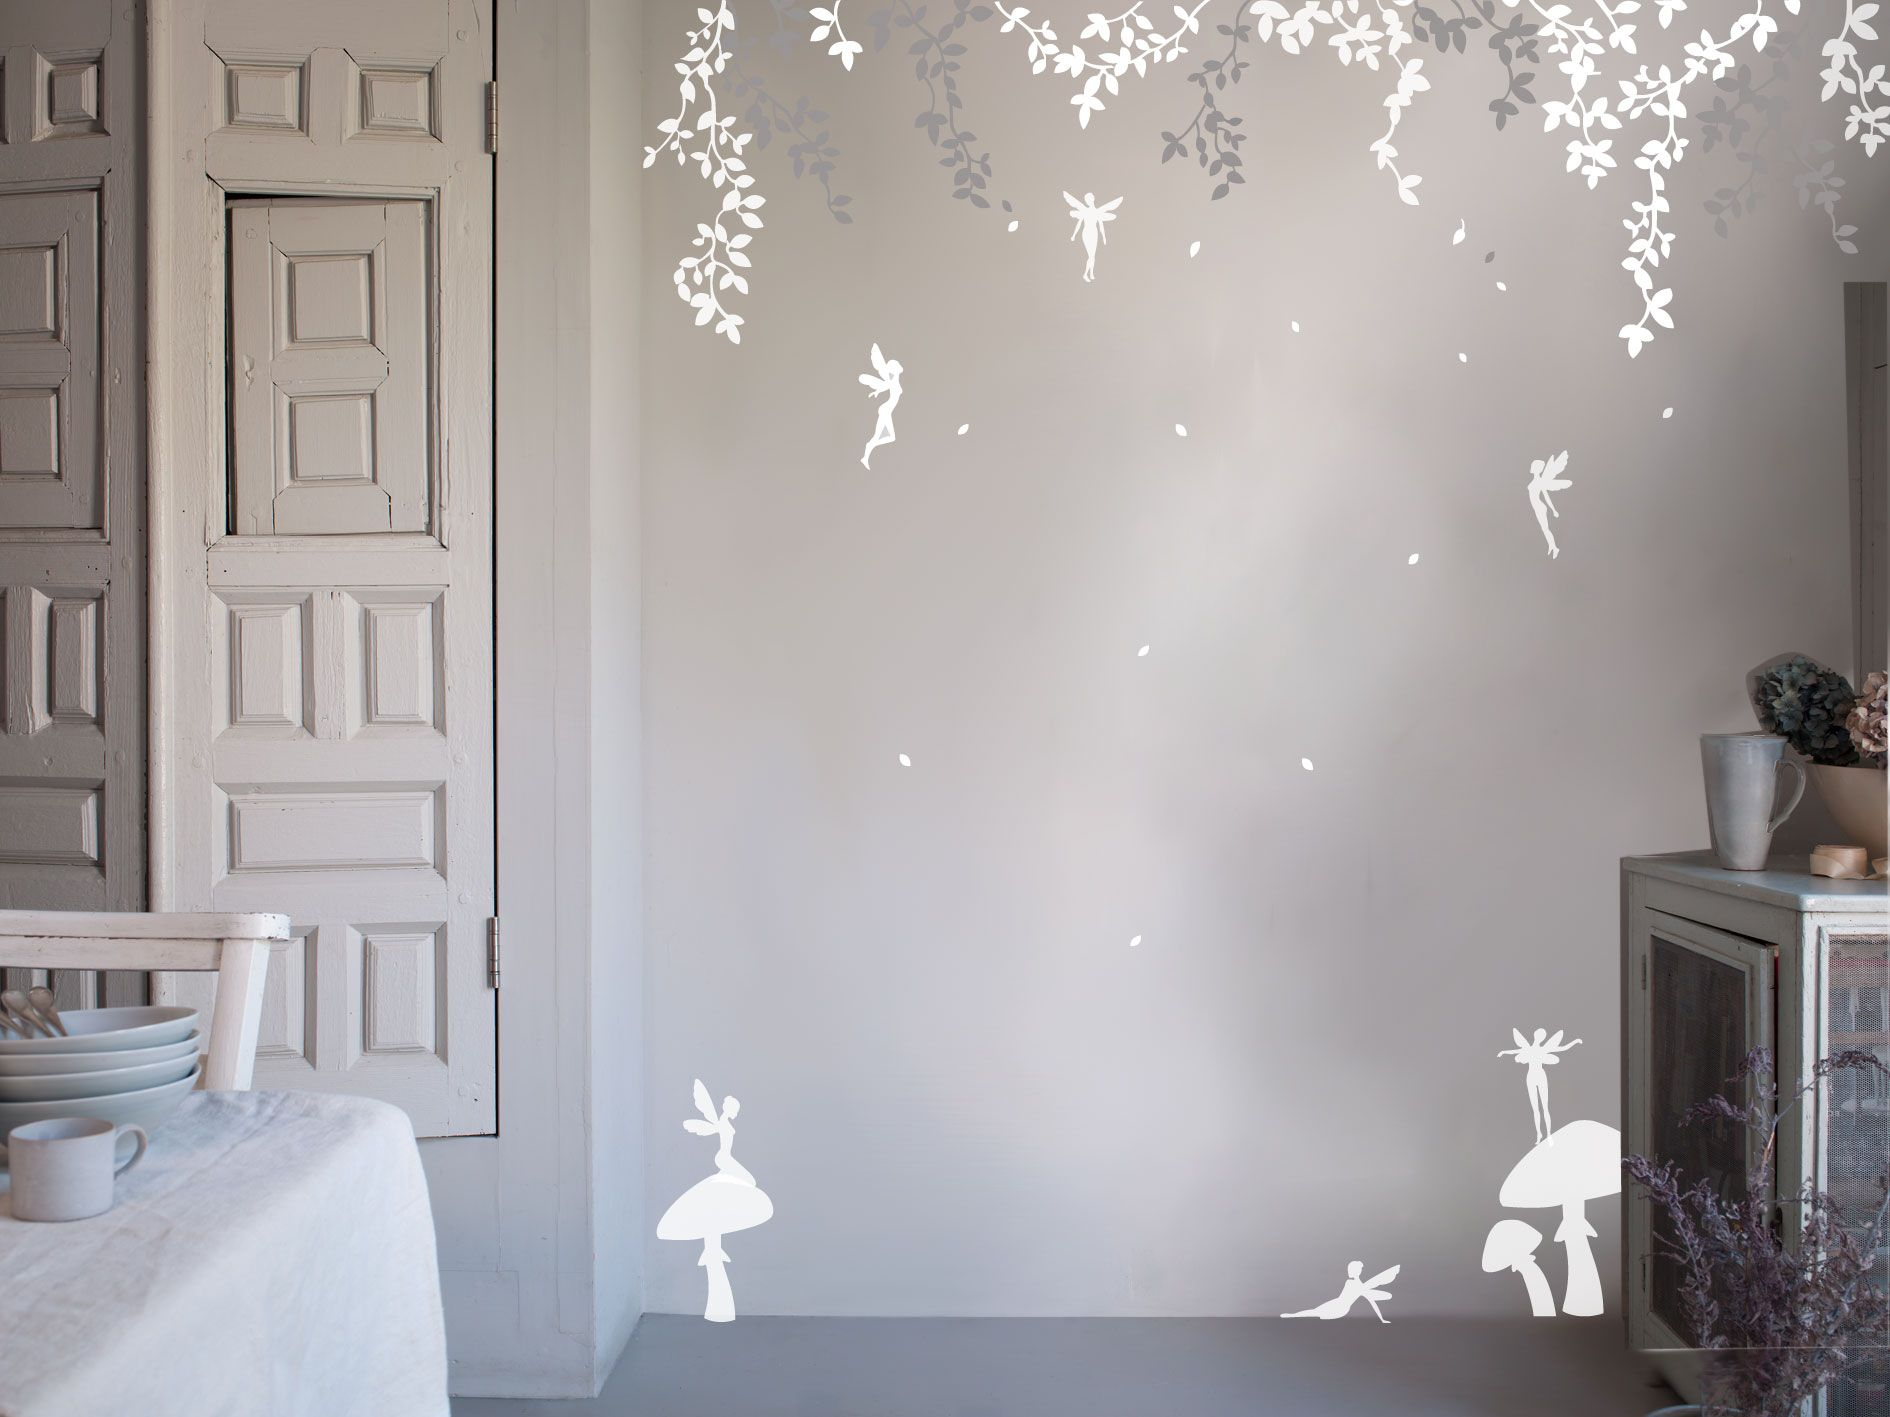 Enchanted Forest Bedroom | Enchanted Fairy Forest Wall Sticker   White/Grey  From Bambizi |